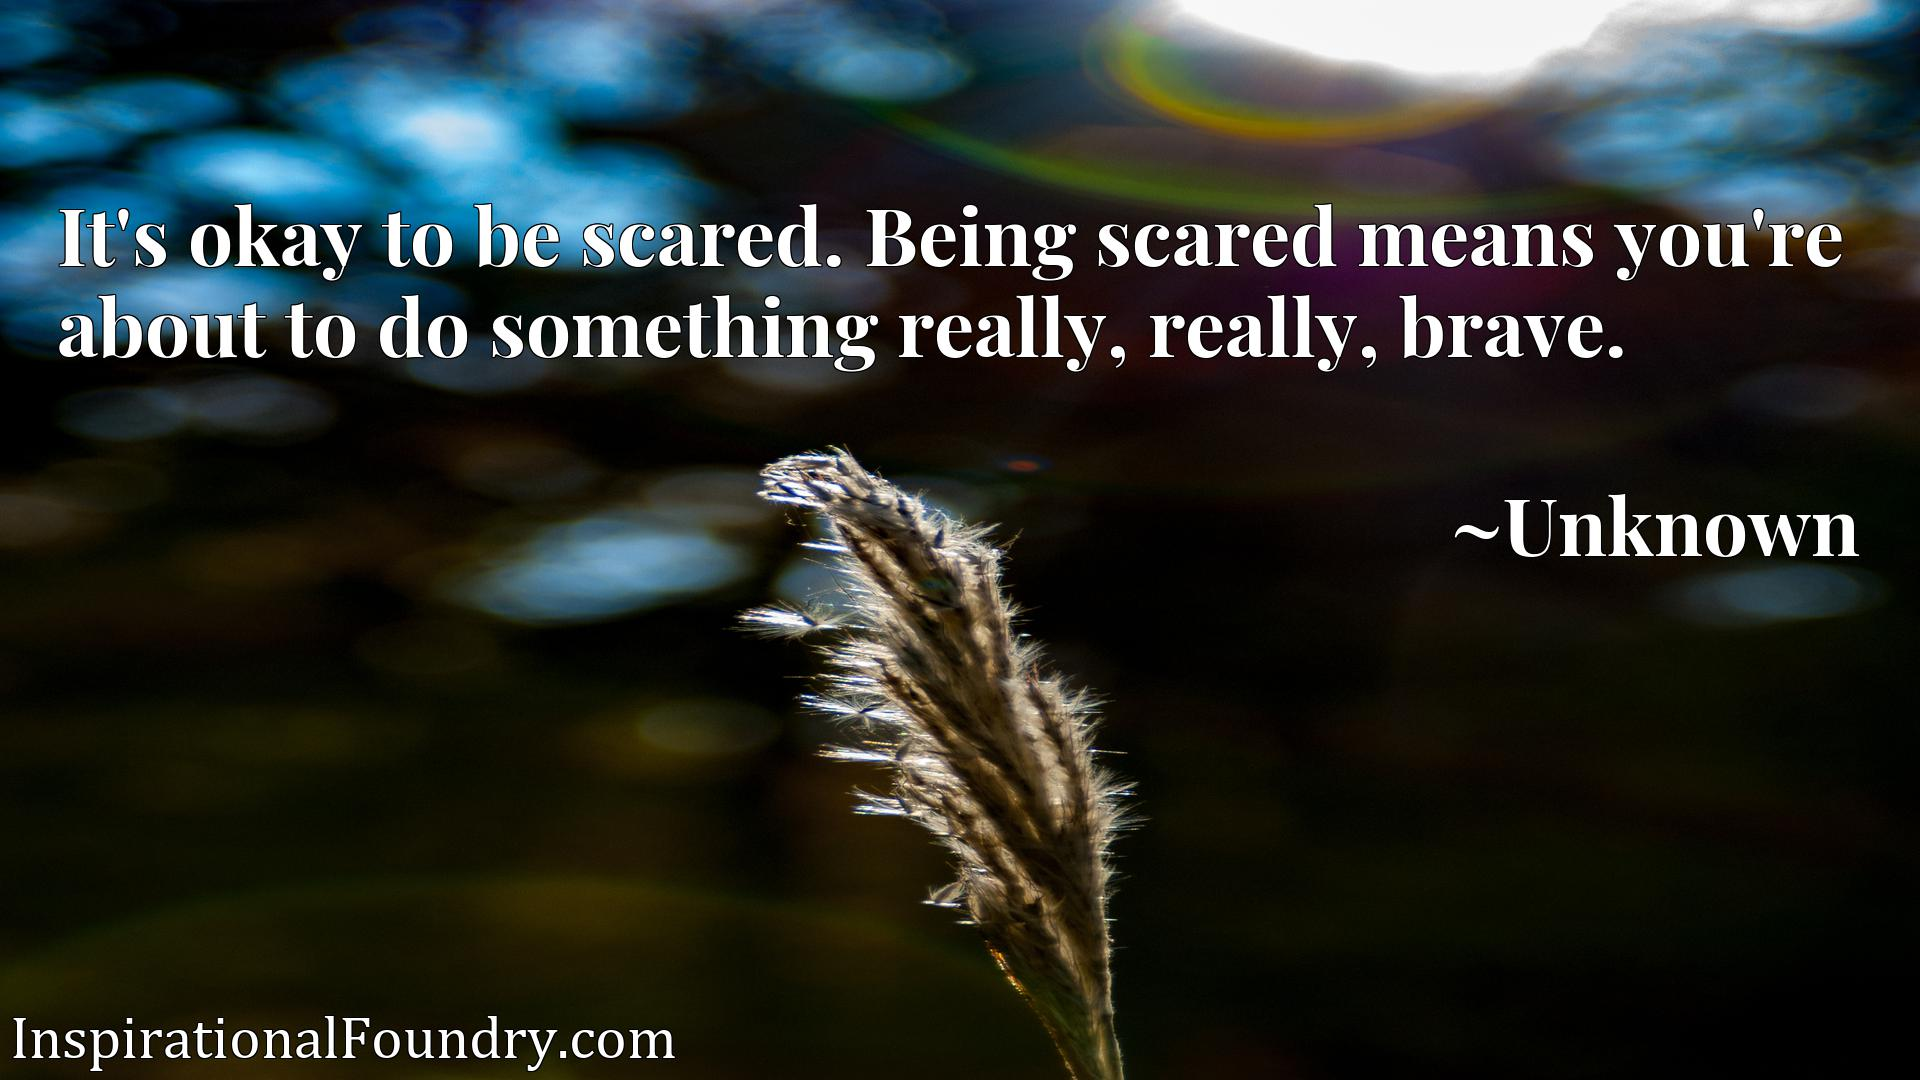 It's okay to be scared. Being scared means you're about to do something really, really, brave.